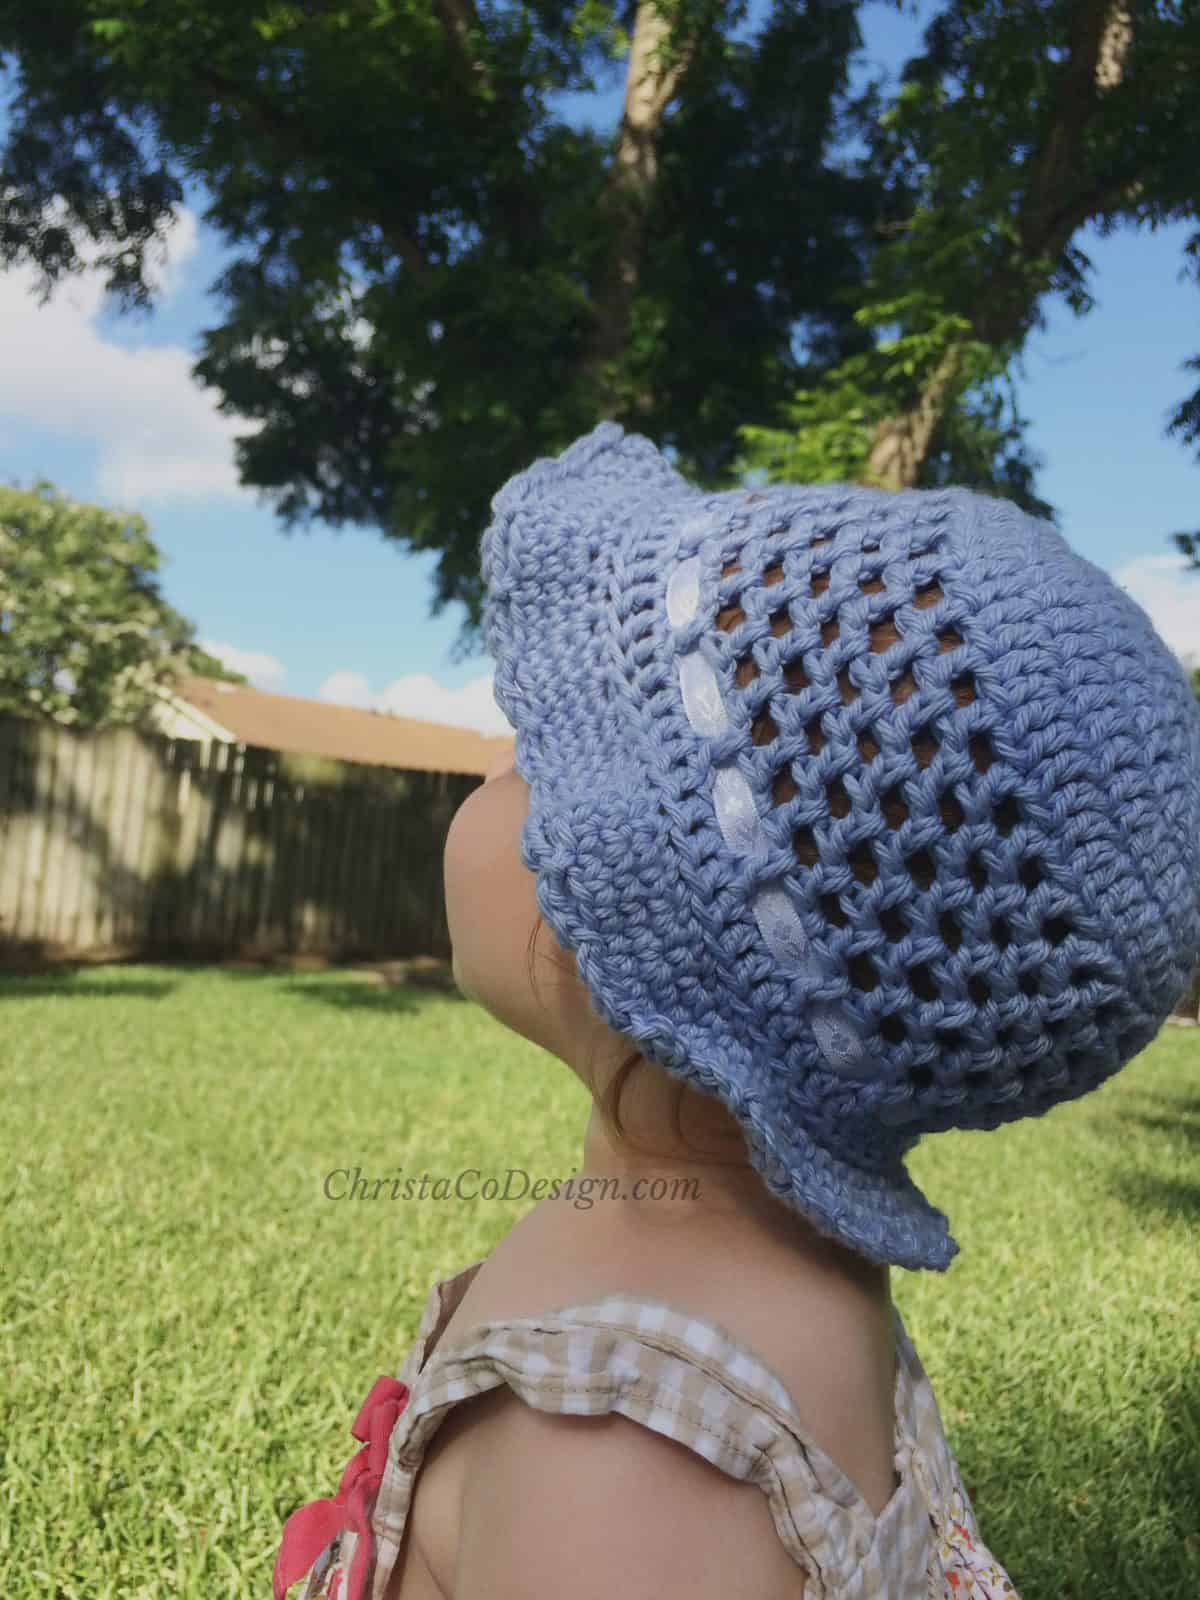 picture of baby outside in toddler sun hat of girl in grass wearing crochet hat